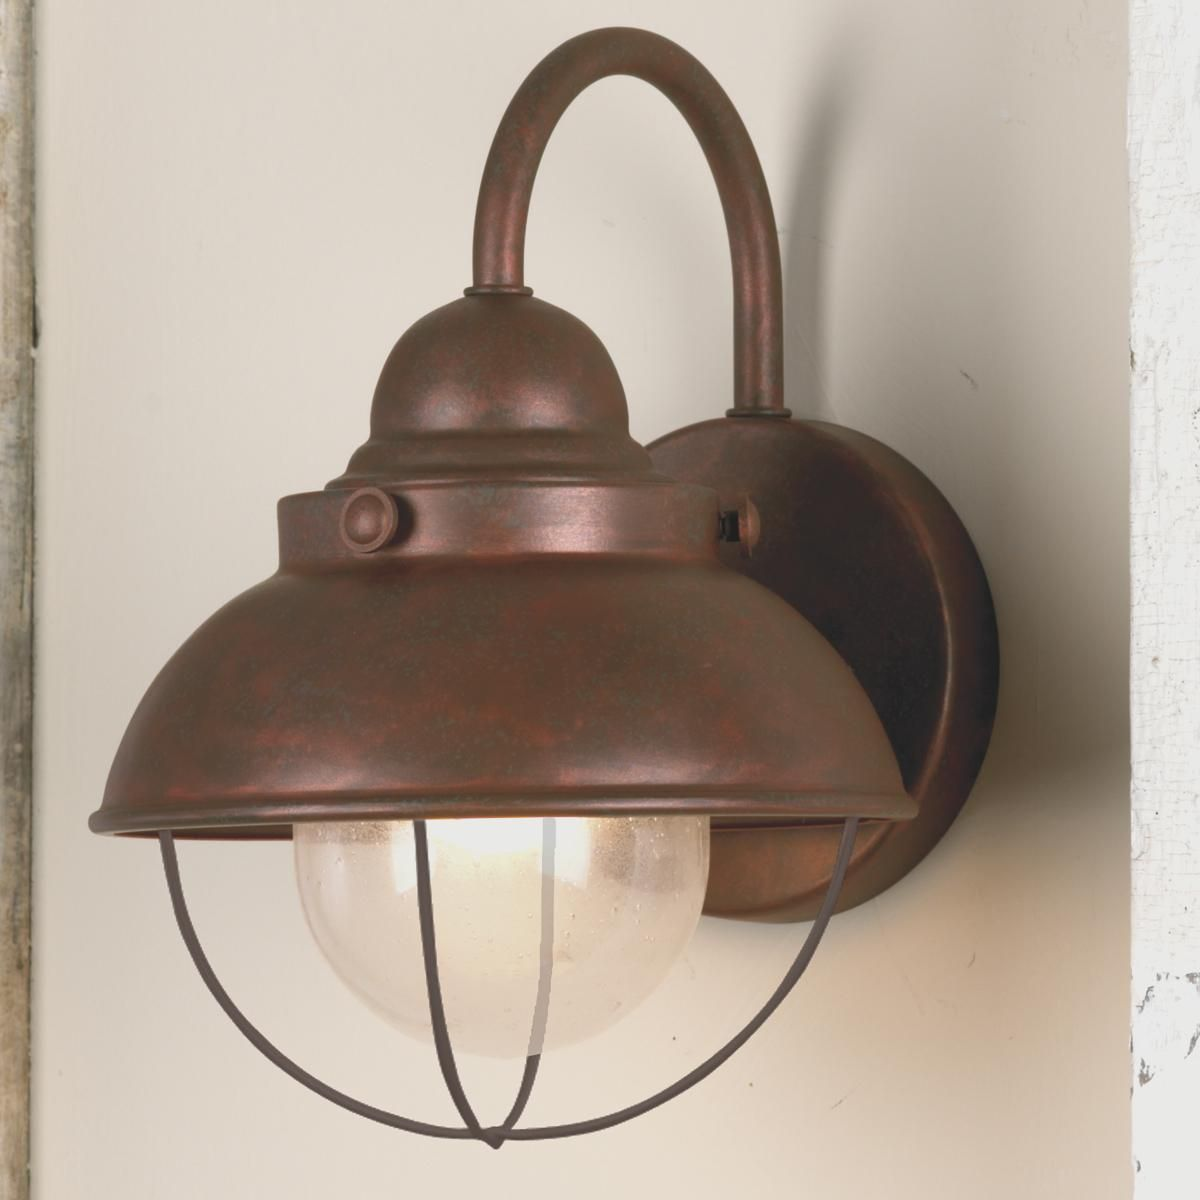 Outdoor Lighting For Beach House: Nantucket Outdoor Light - Large